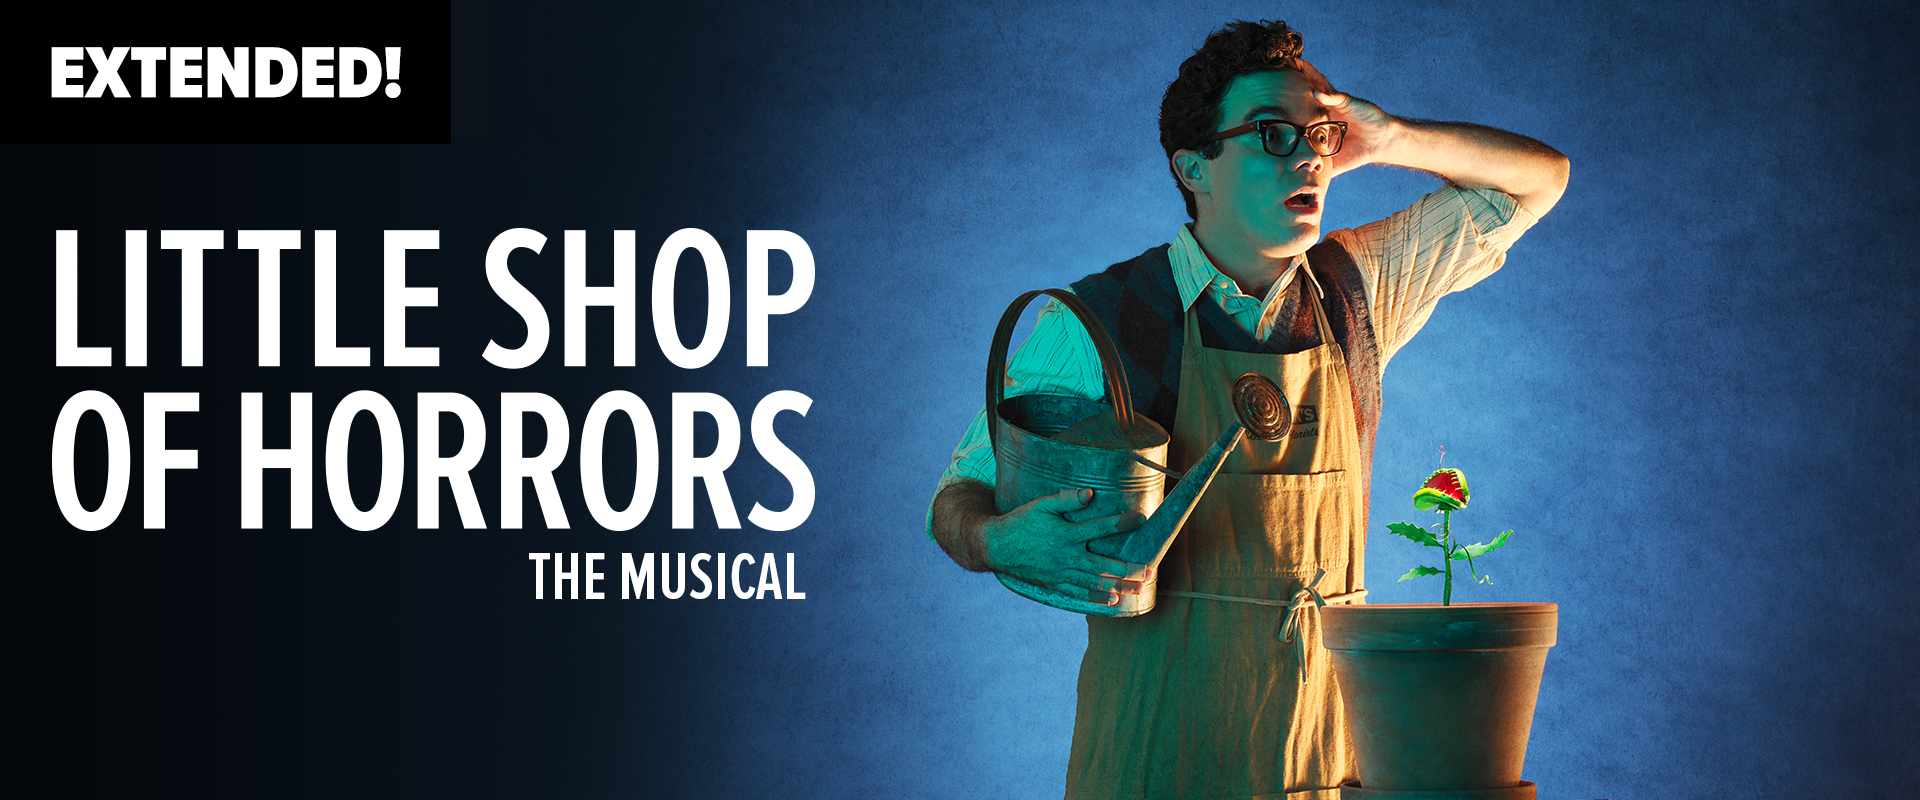 Publicity image from Little Shop of Horrors